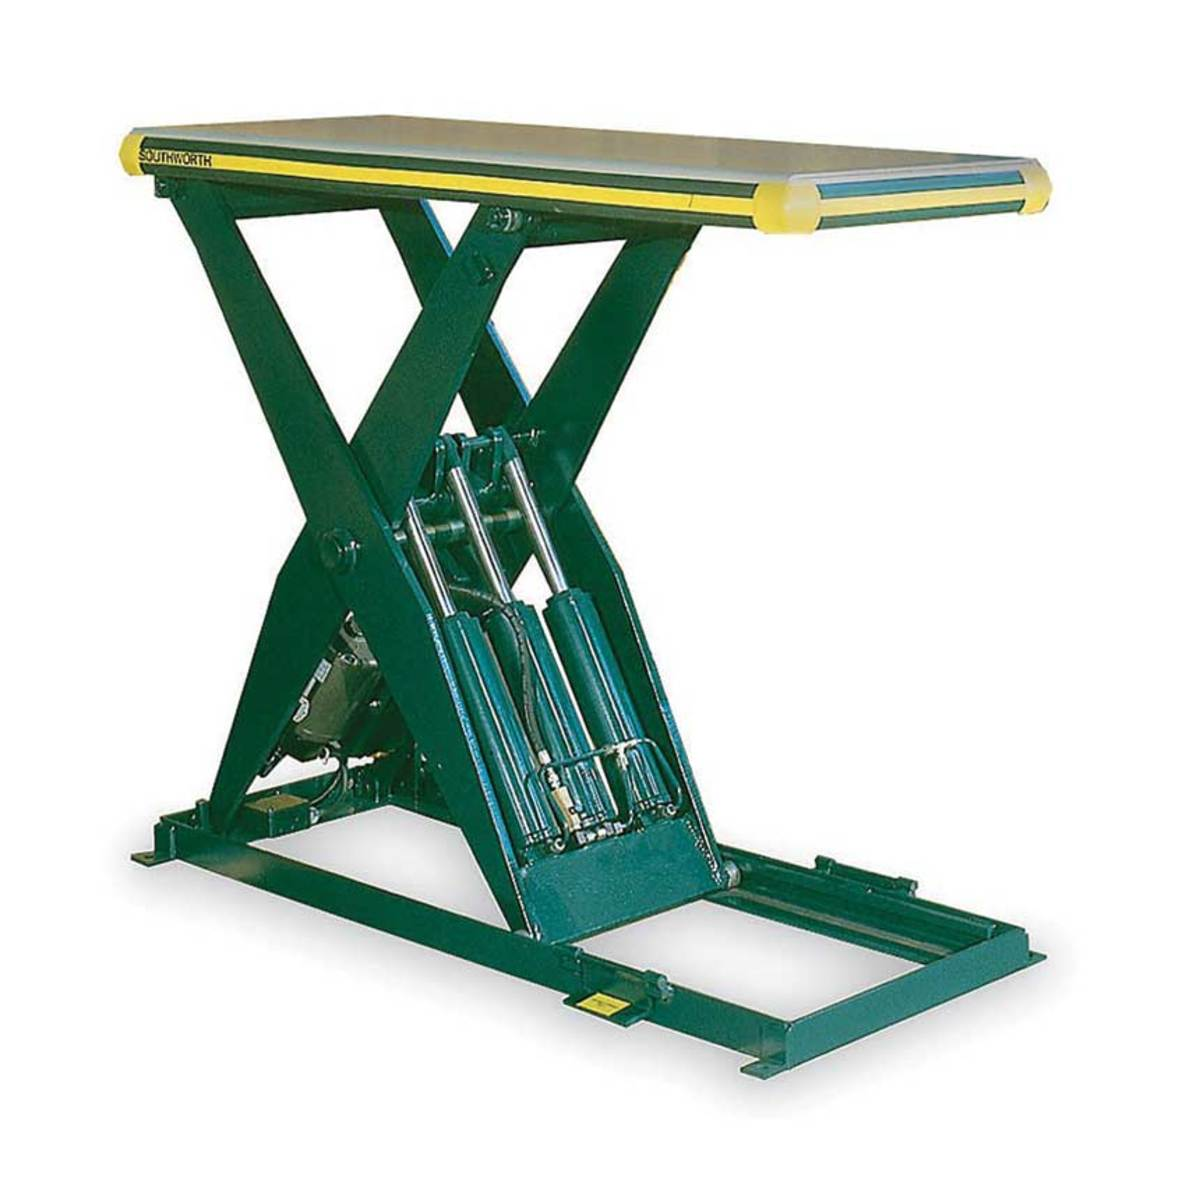 Southworth's Backsaver lift table.